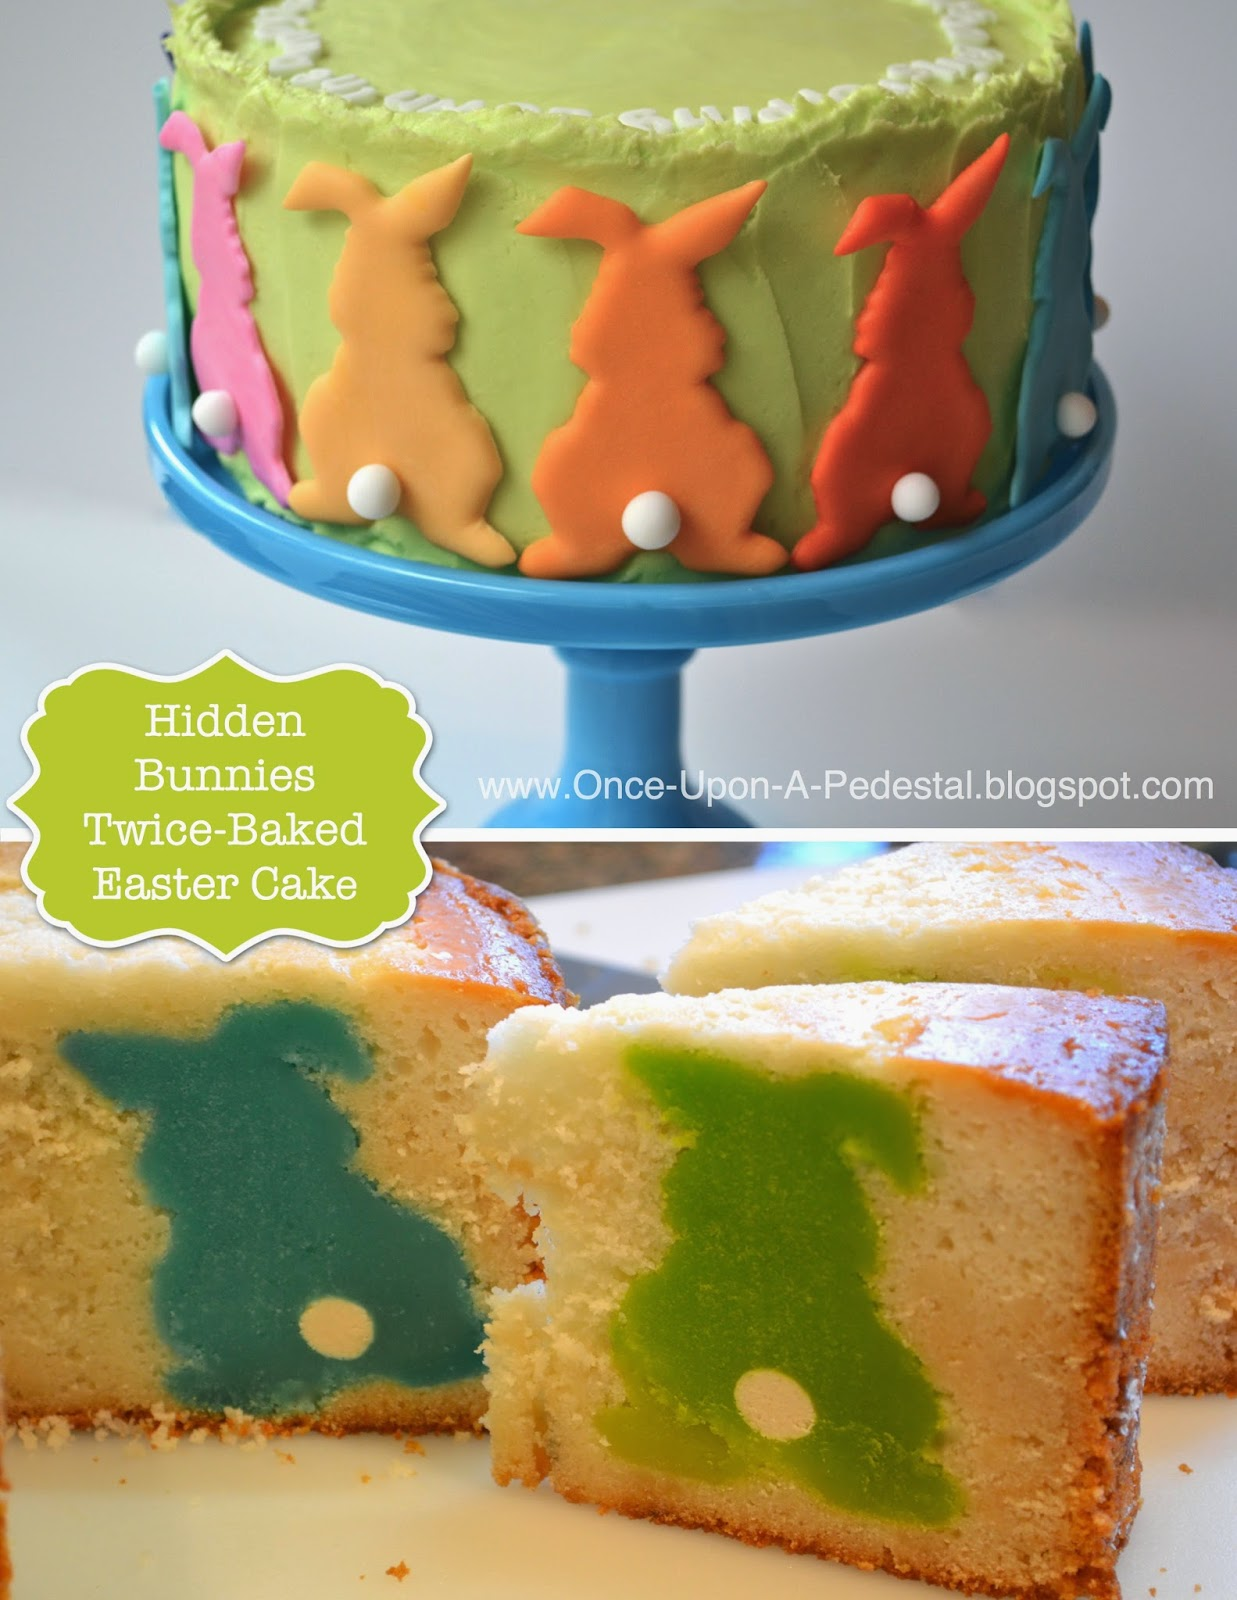 rainbow-polka-dot-suprise-inside-cake-spotty-free-tutorial-deborah-stauch